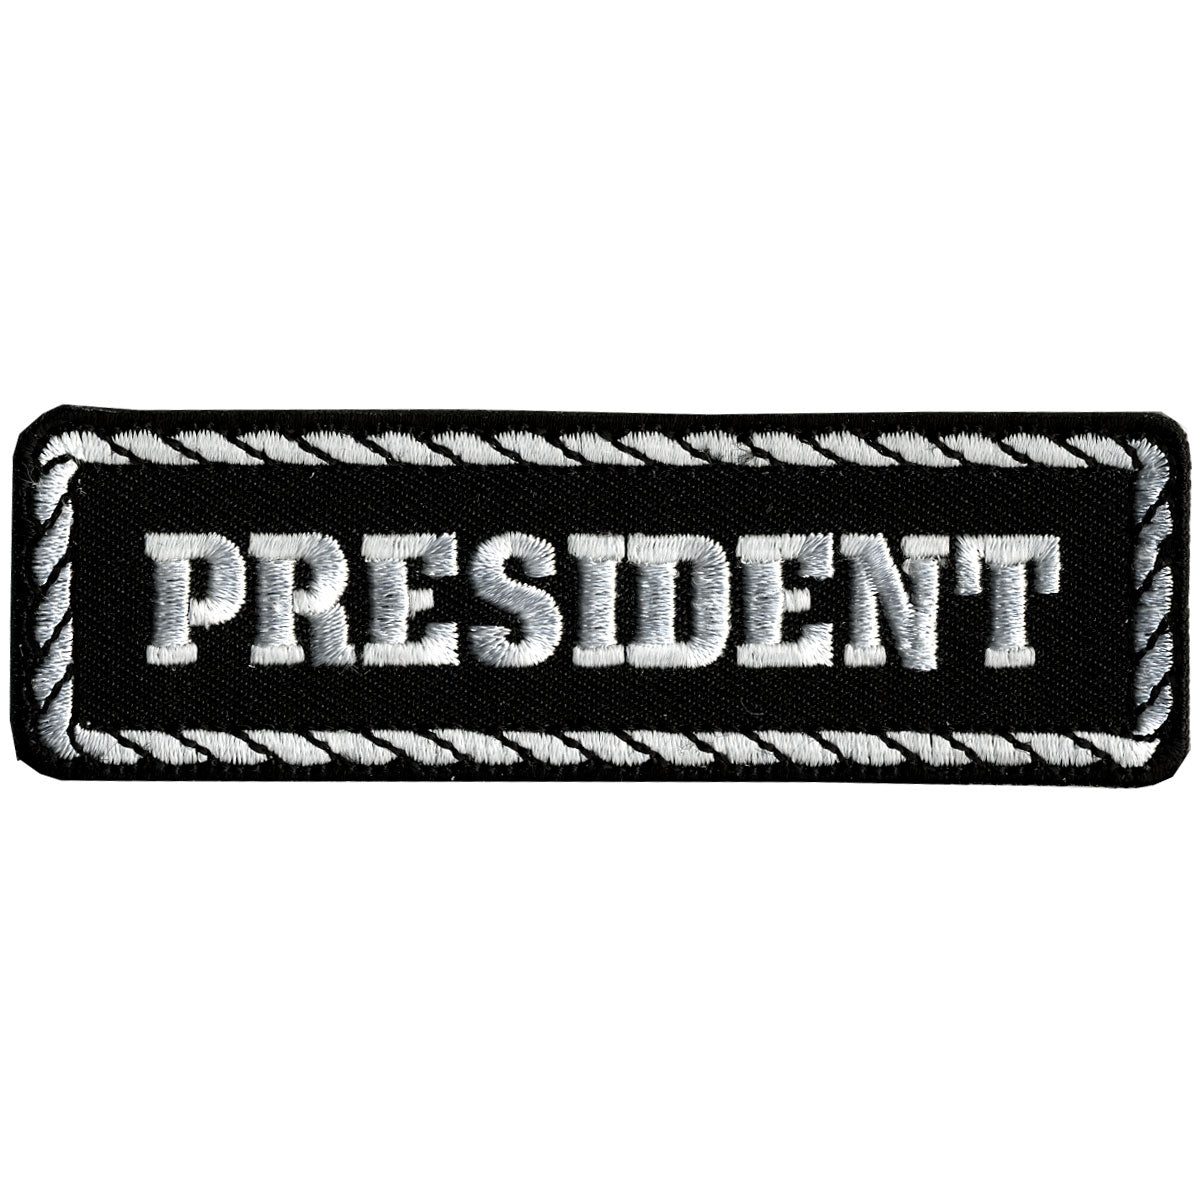 "Hot Leathers President 4"" x 1"" Patch"